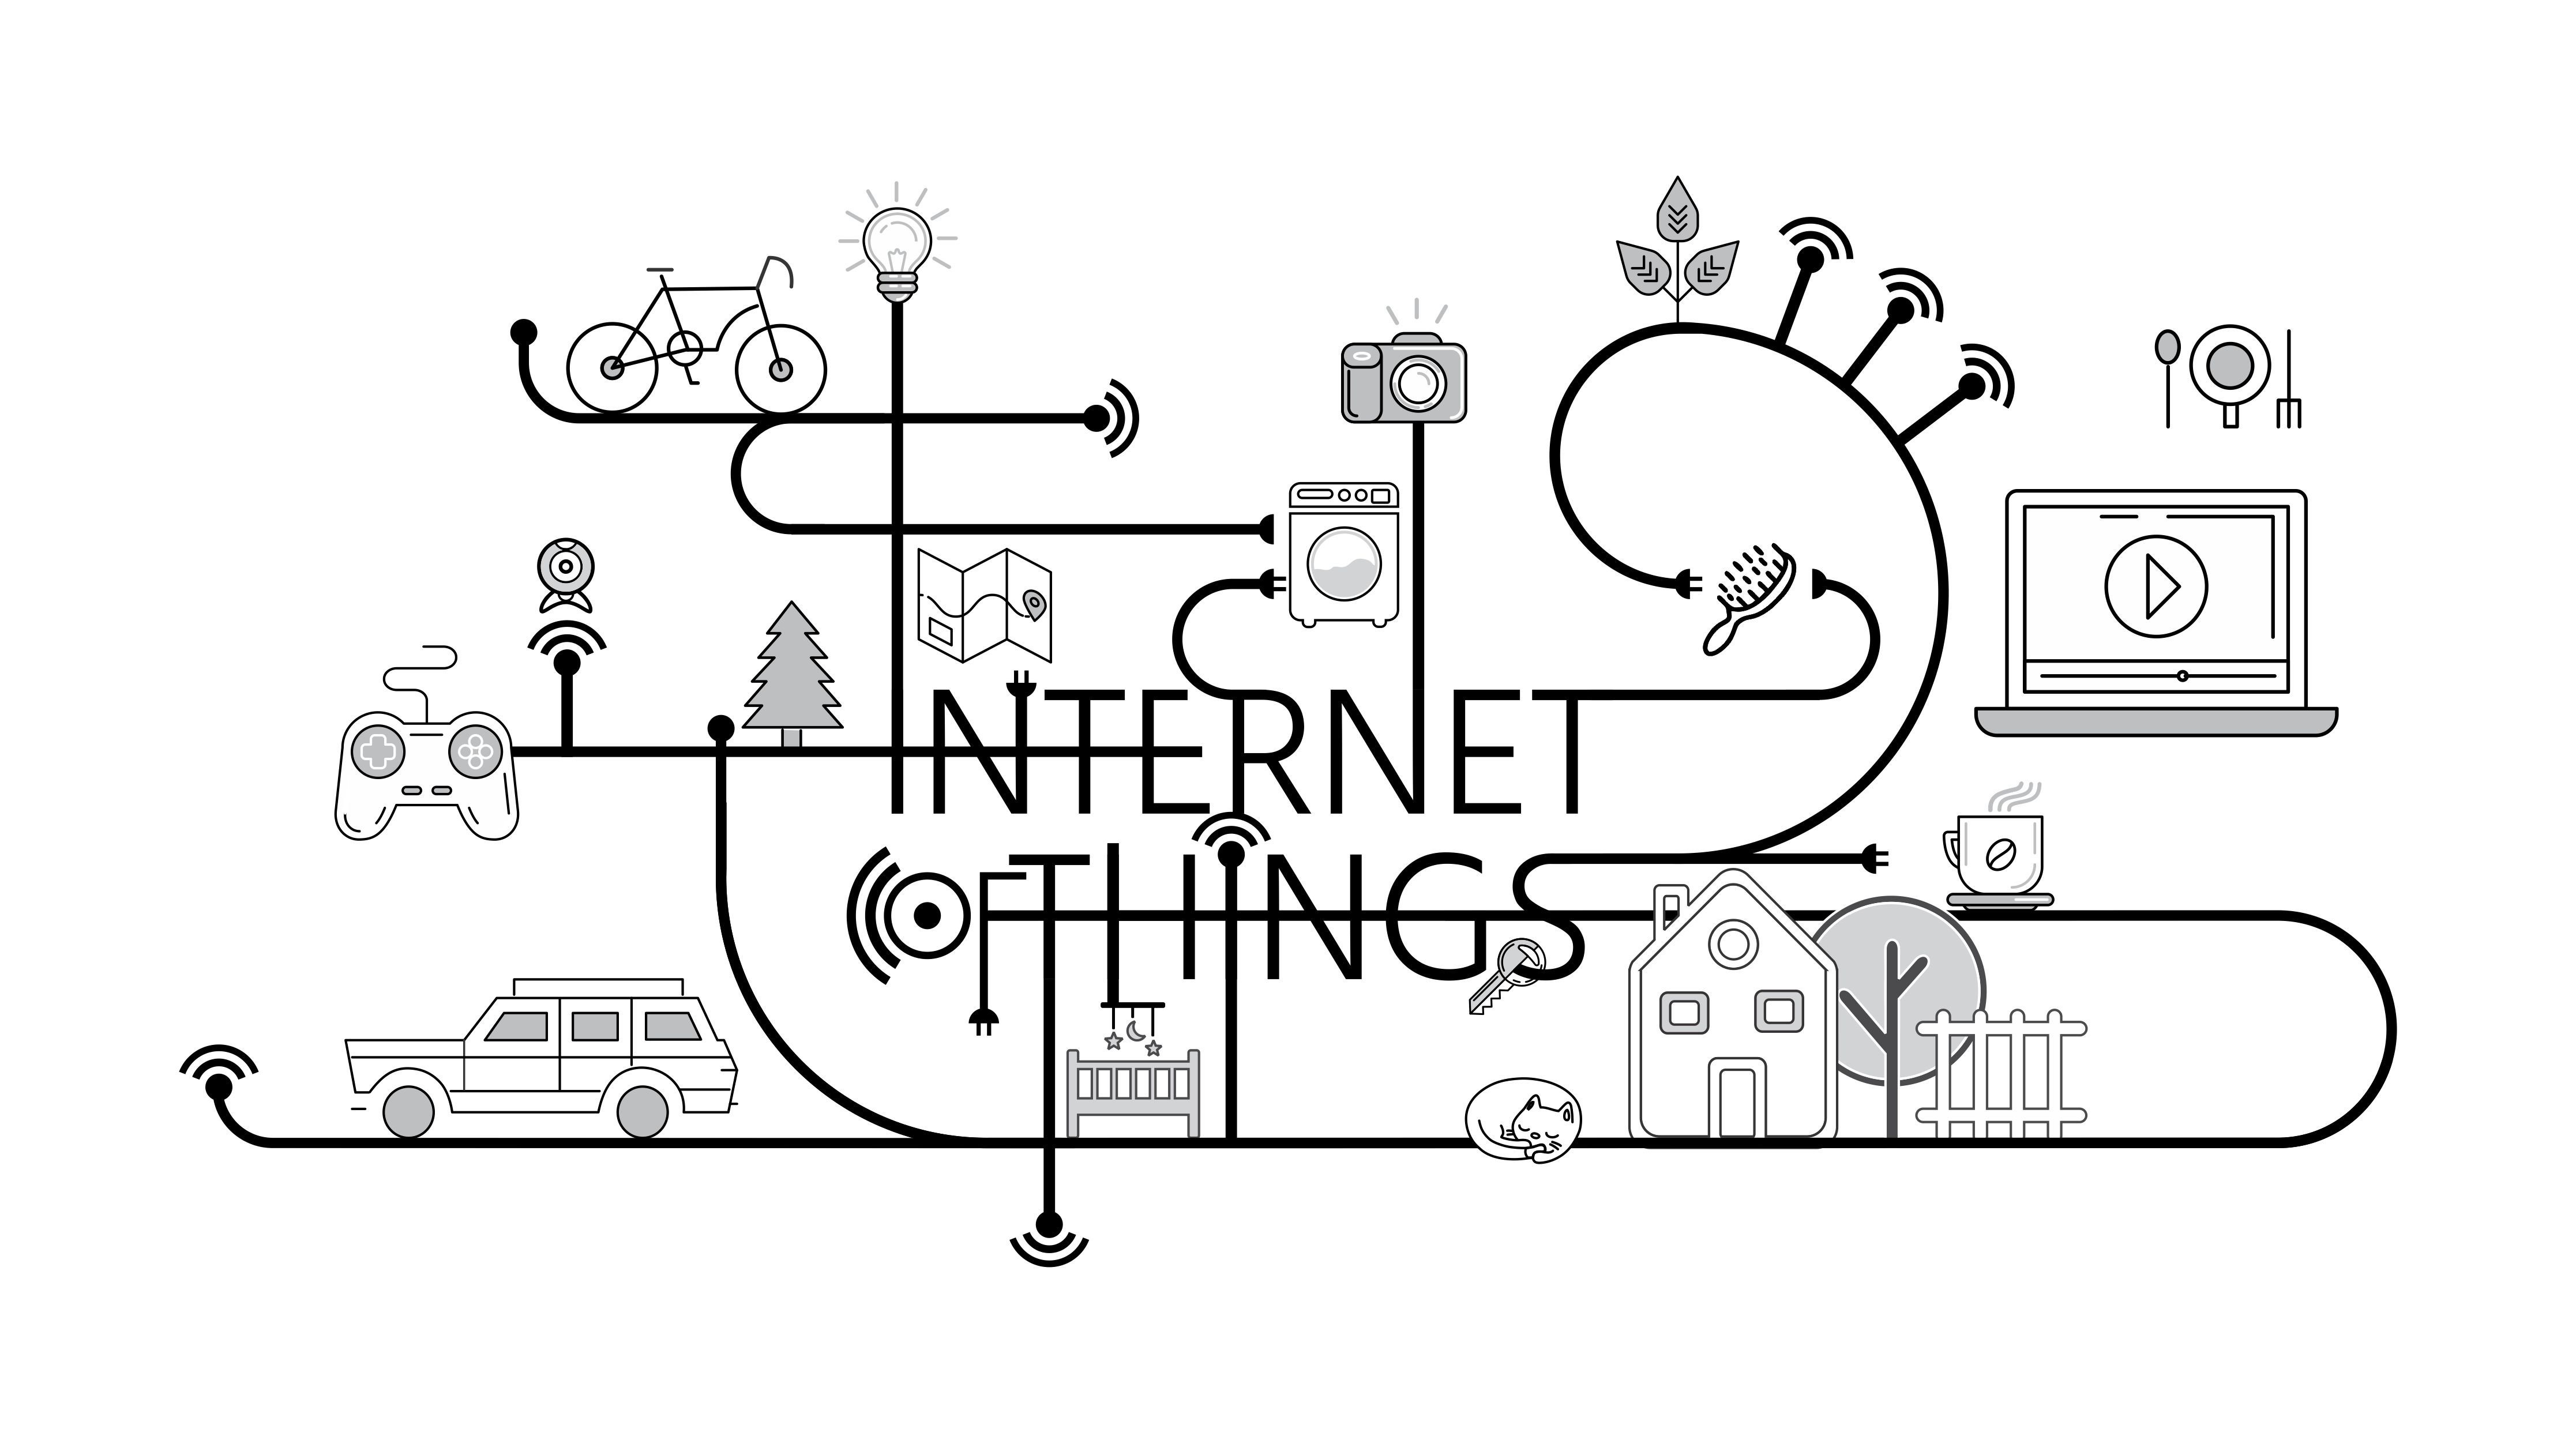 Internet of Things – What to expect in the coming year 2018?